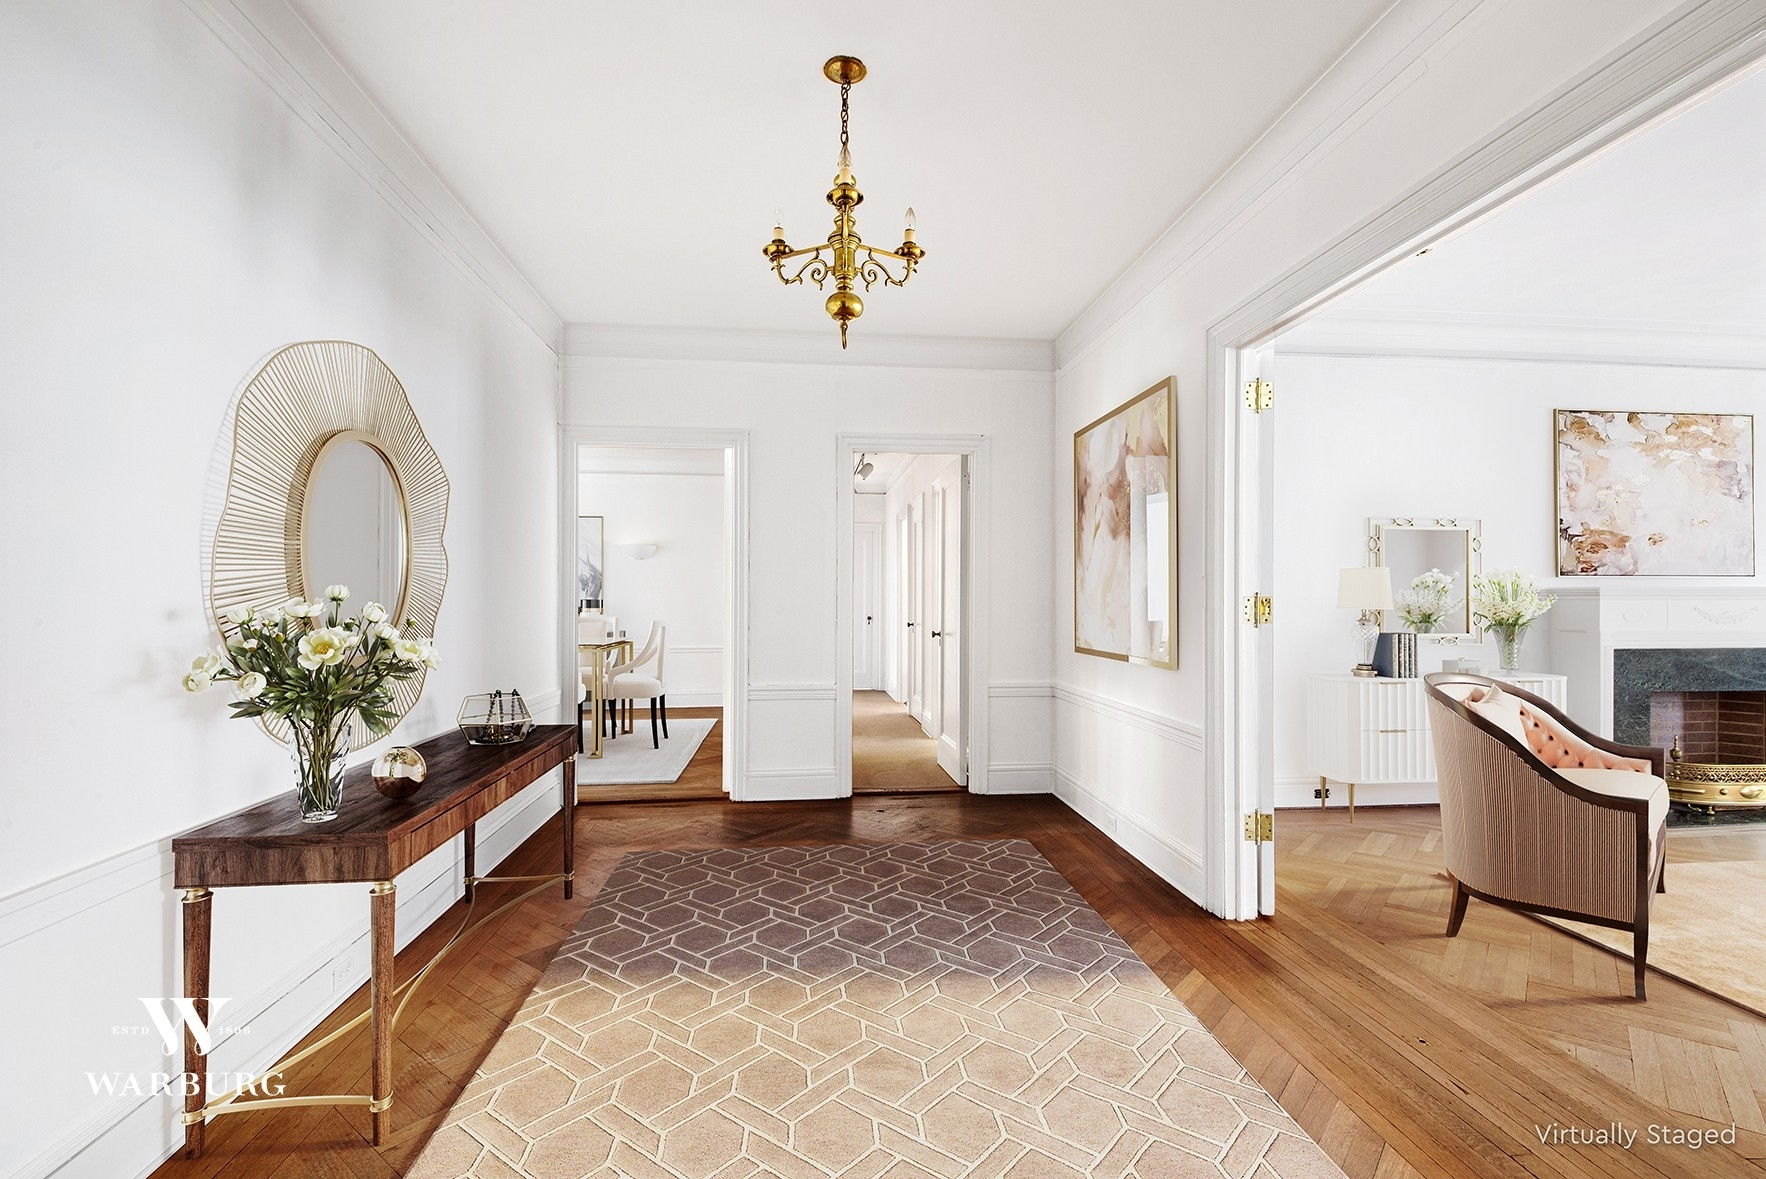 Property at Upper West Side, New York, NY 10024